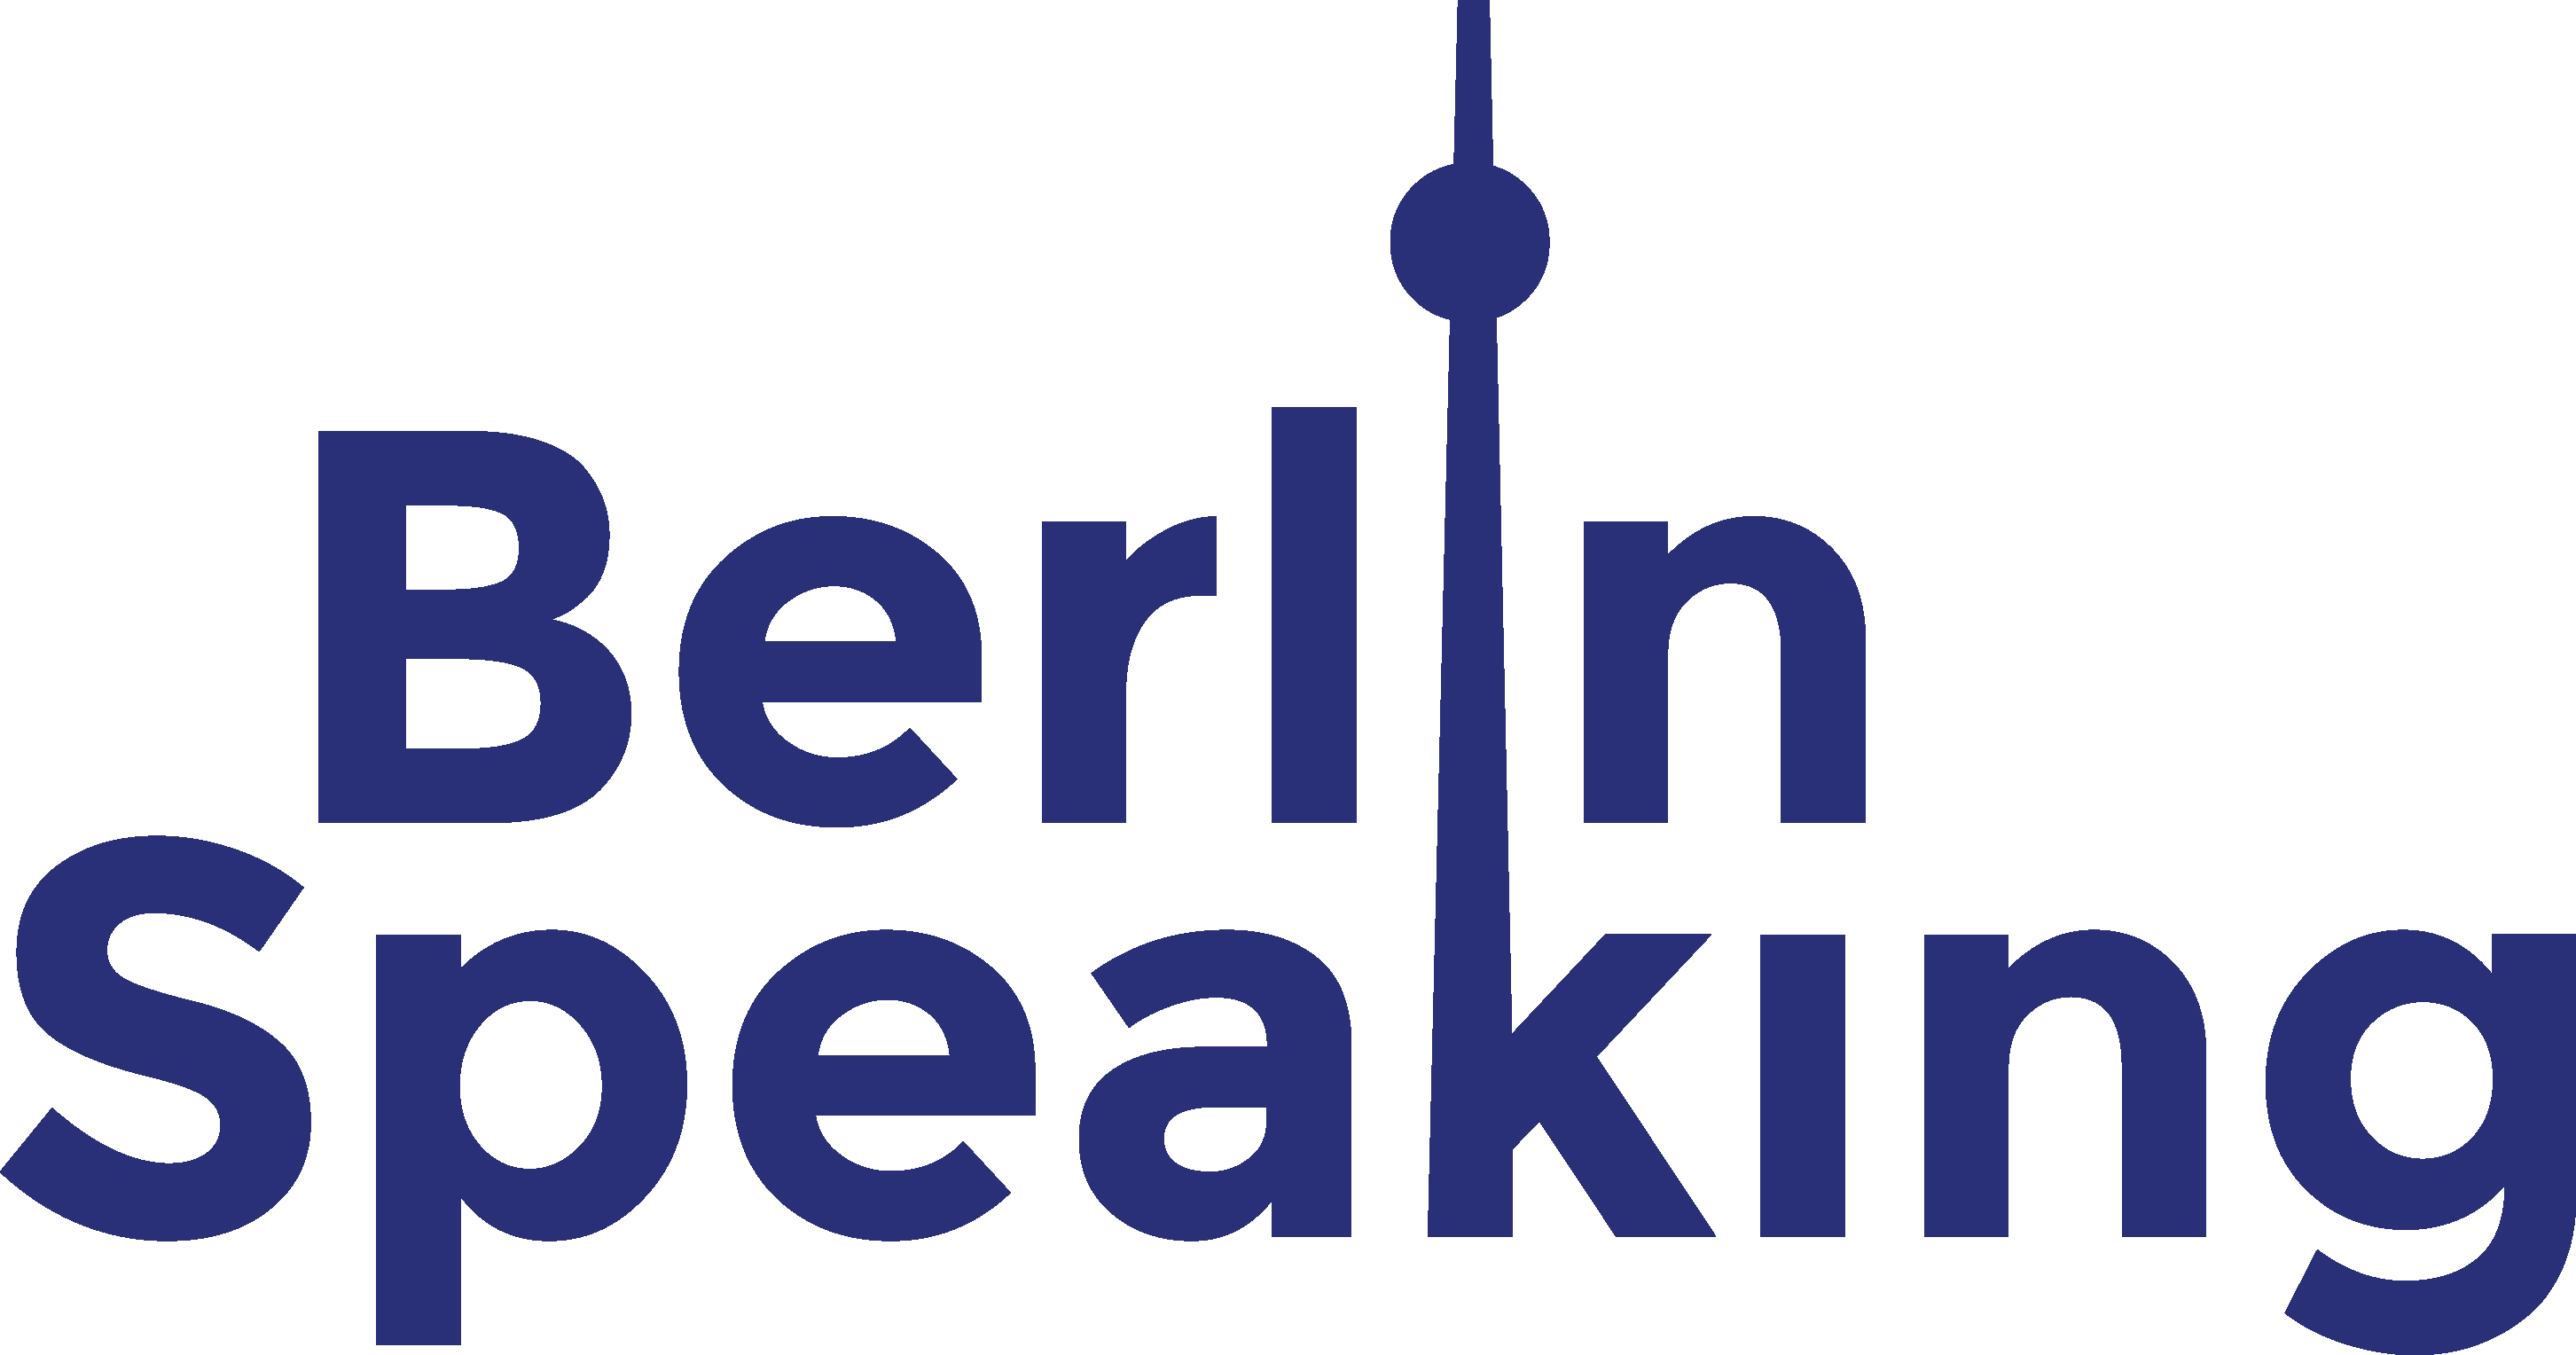 Berlin Speaking